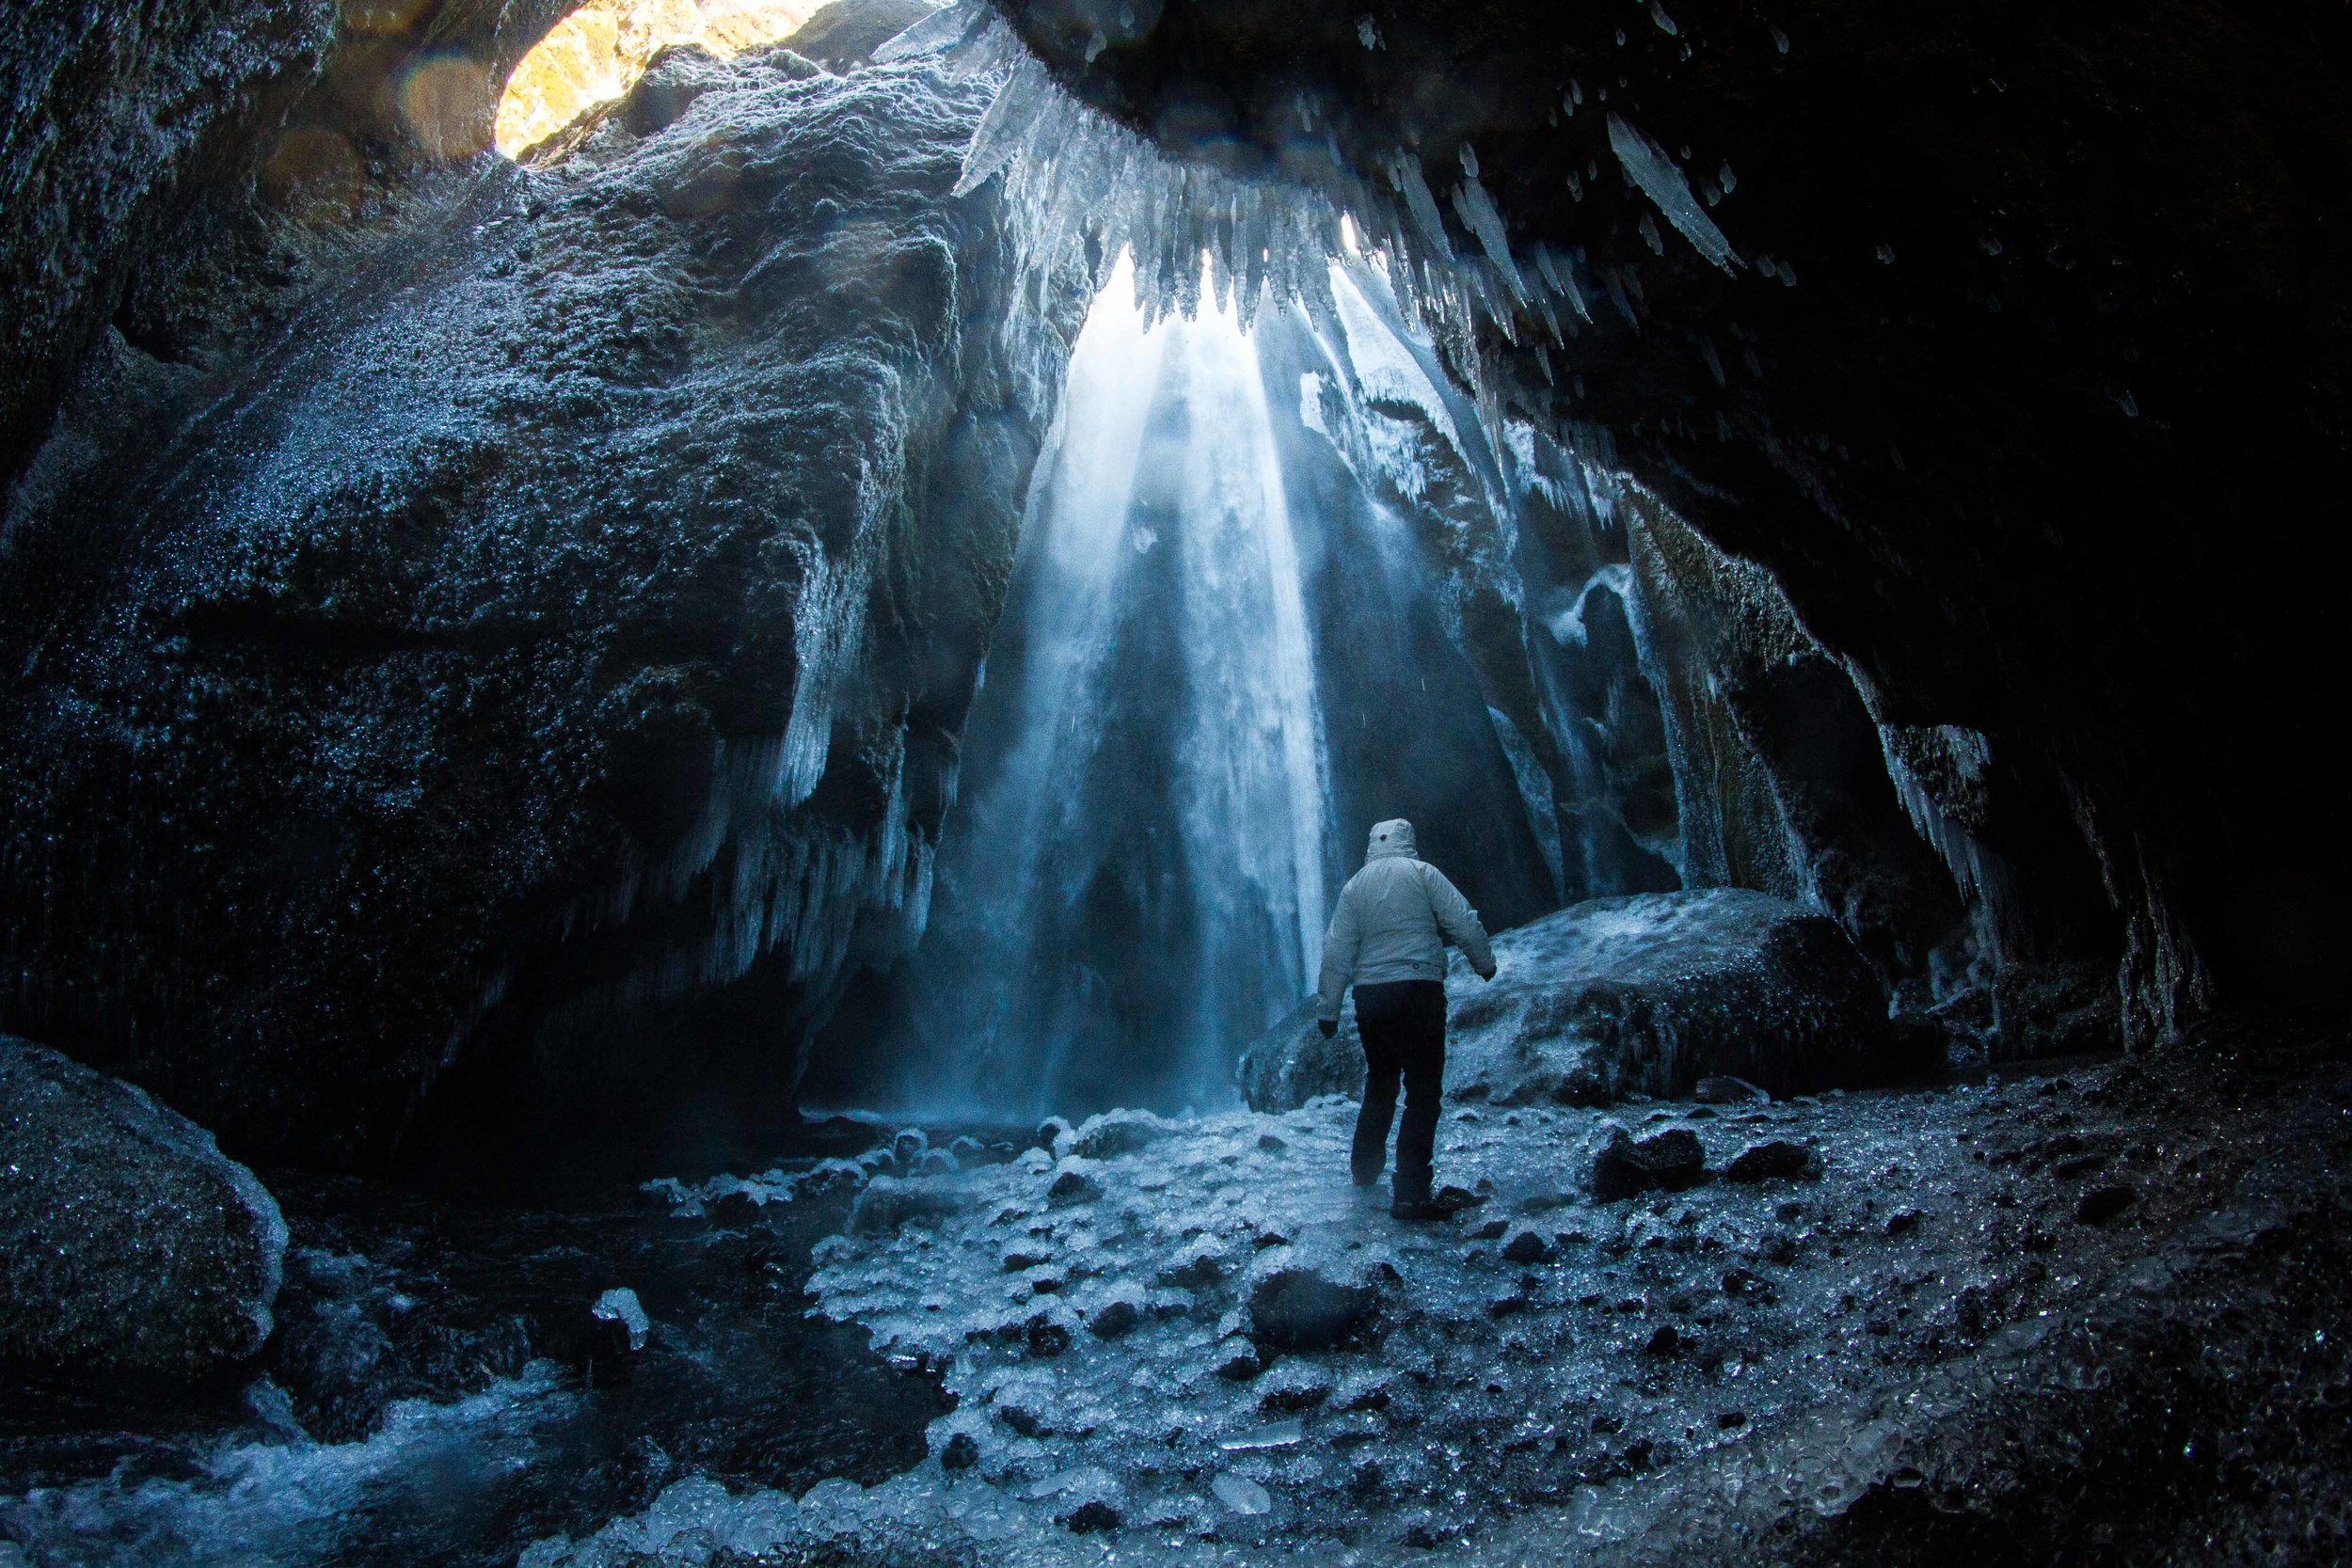 Gljúfurárfoss, a waterfall in a cave